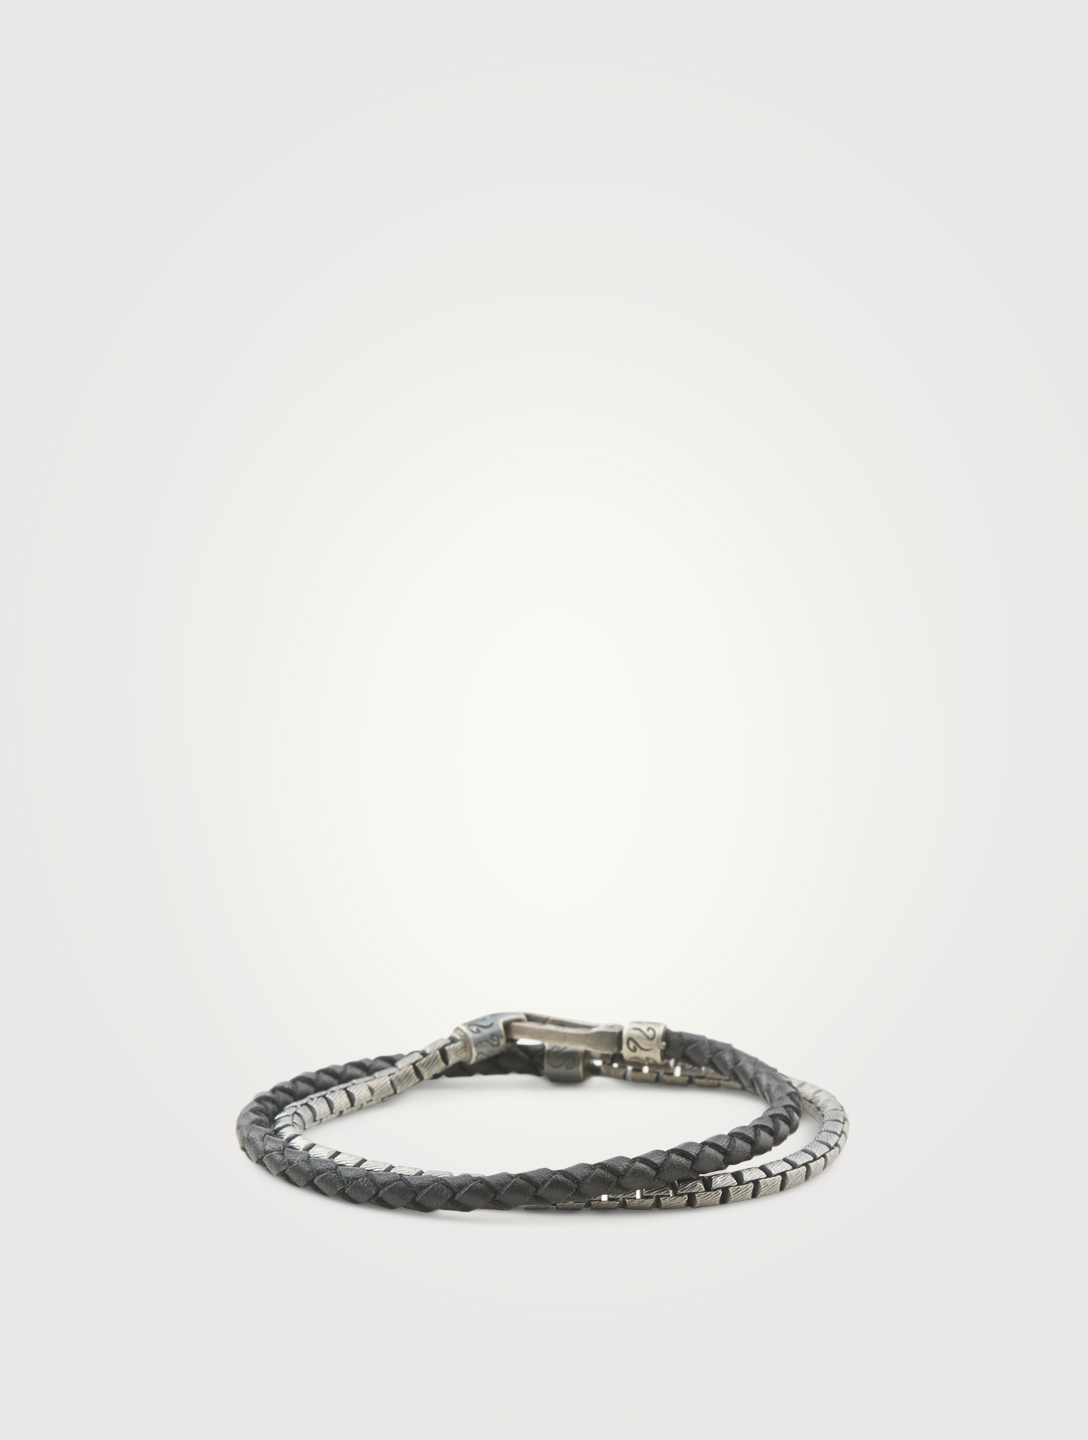 MARCO DAL MASO Lash Double Wrap Chain And Braided Leather Bracelet Men's Black